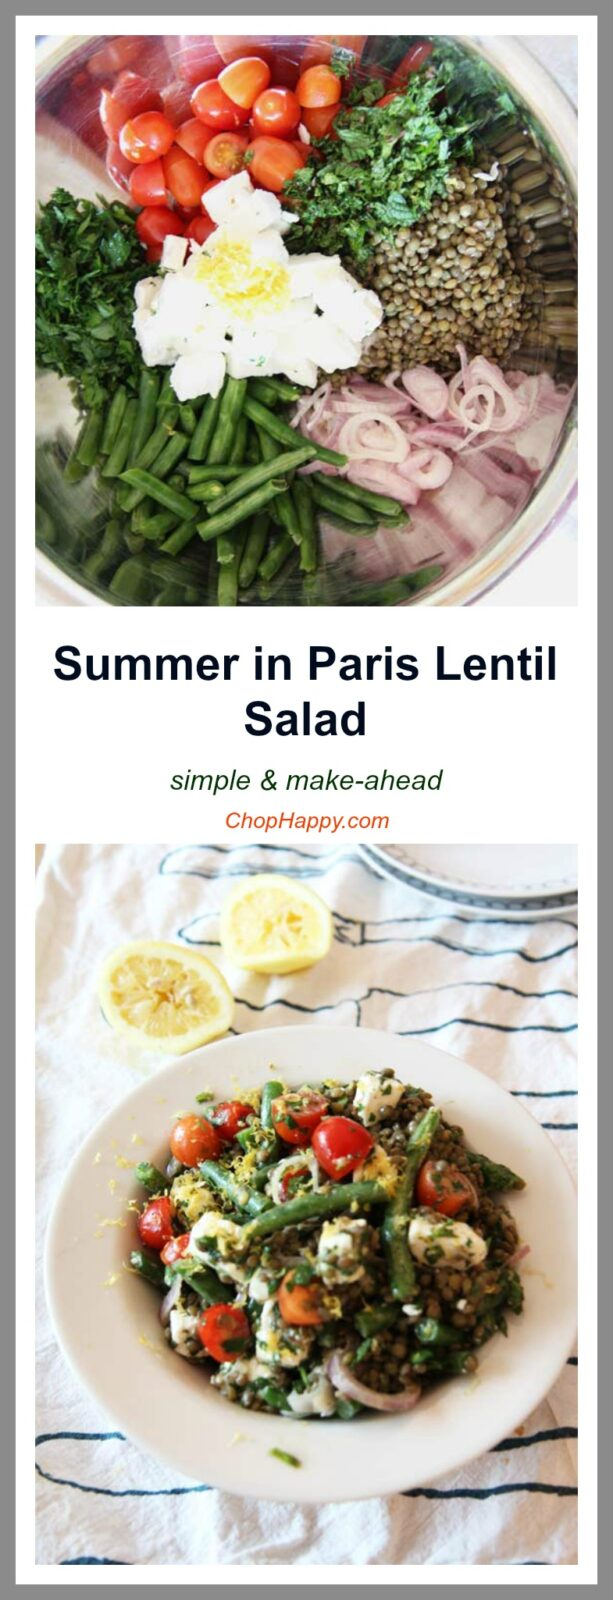 Summer in Paris Lentil Salad is an easy, quick recipe. Perfect is you do not have allot of time, or just want dinner for a couple of days. Excellent leftovers. ChopHappy.com